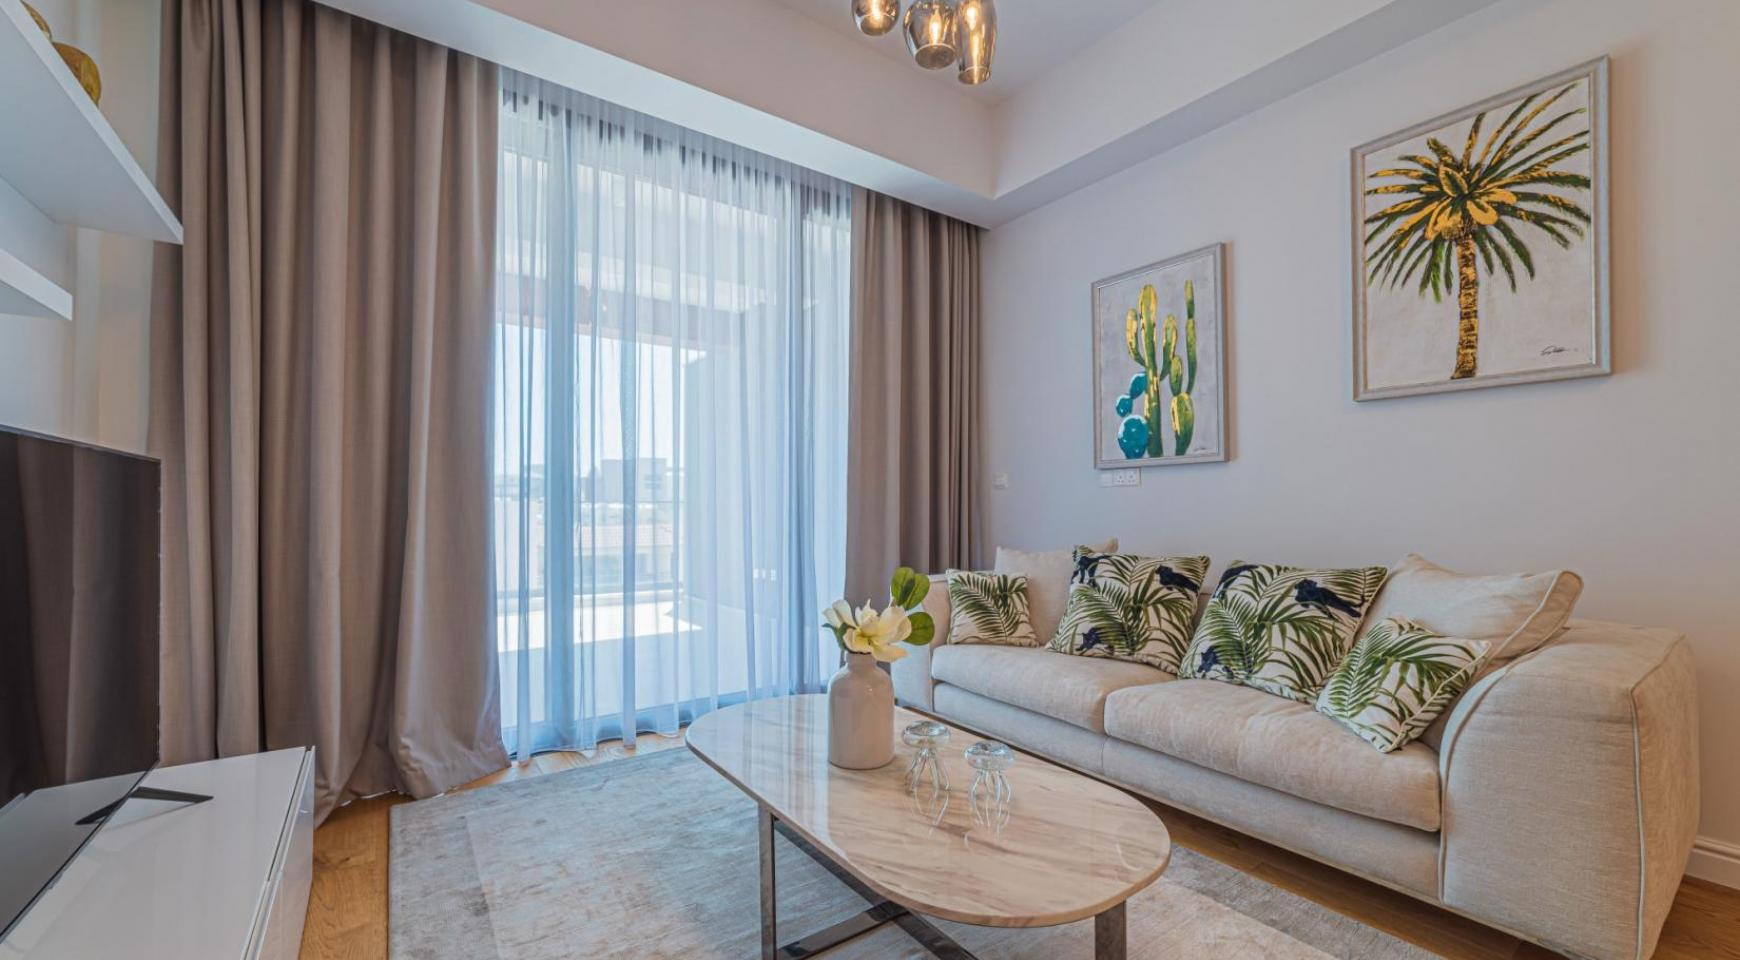 Hortensia Residence, Apt. 301. 2 Bedroom Apartment within a New Complex near the Sea  - 51